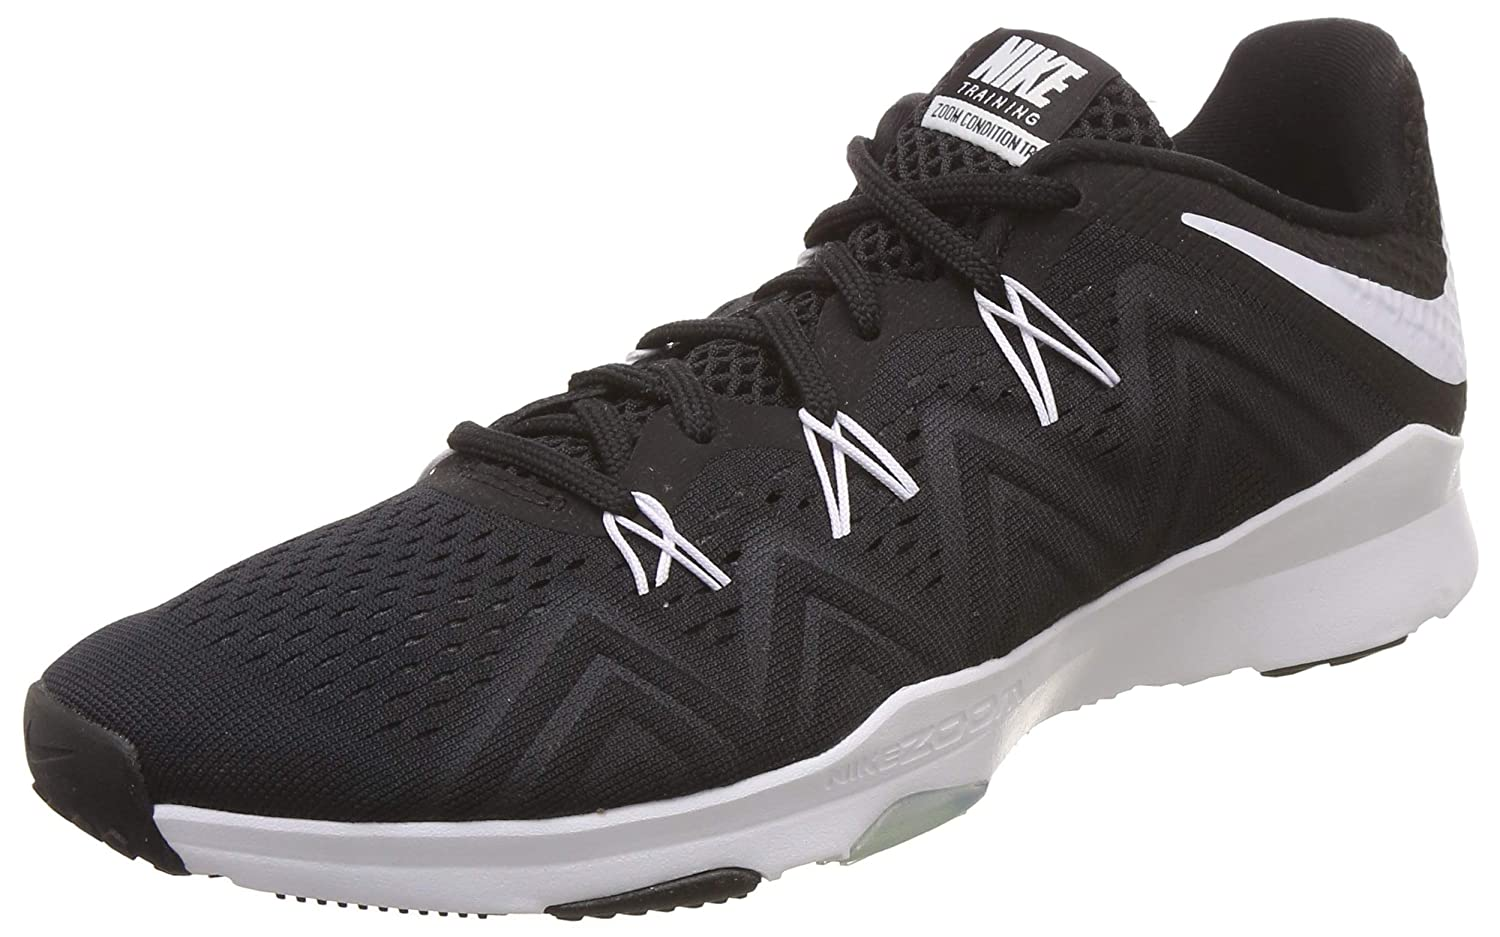 Nike WMNS Zoom Condition TR – Noir/Blanc/Anthracite